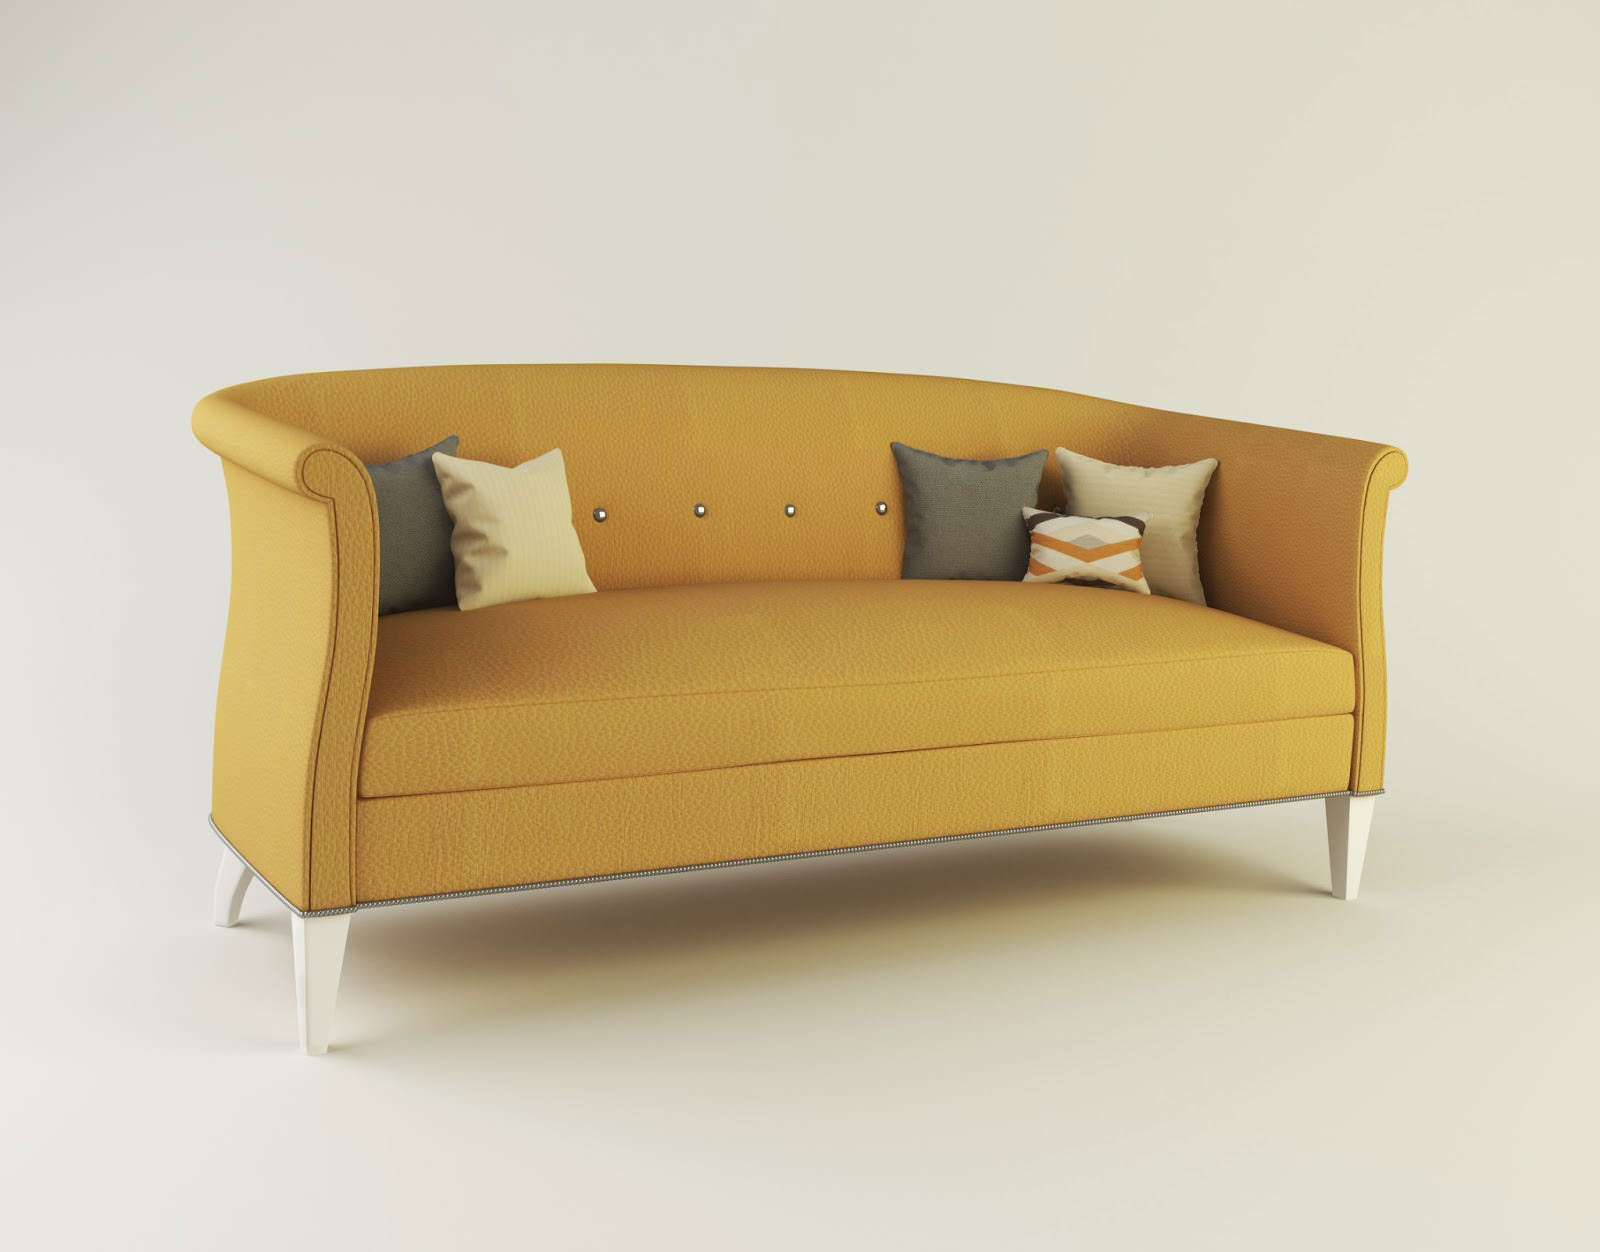 3D model Albert Sofa from Albert Sack Collection by Hickory Chair